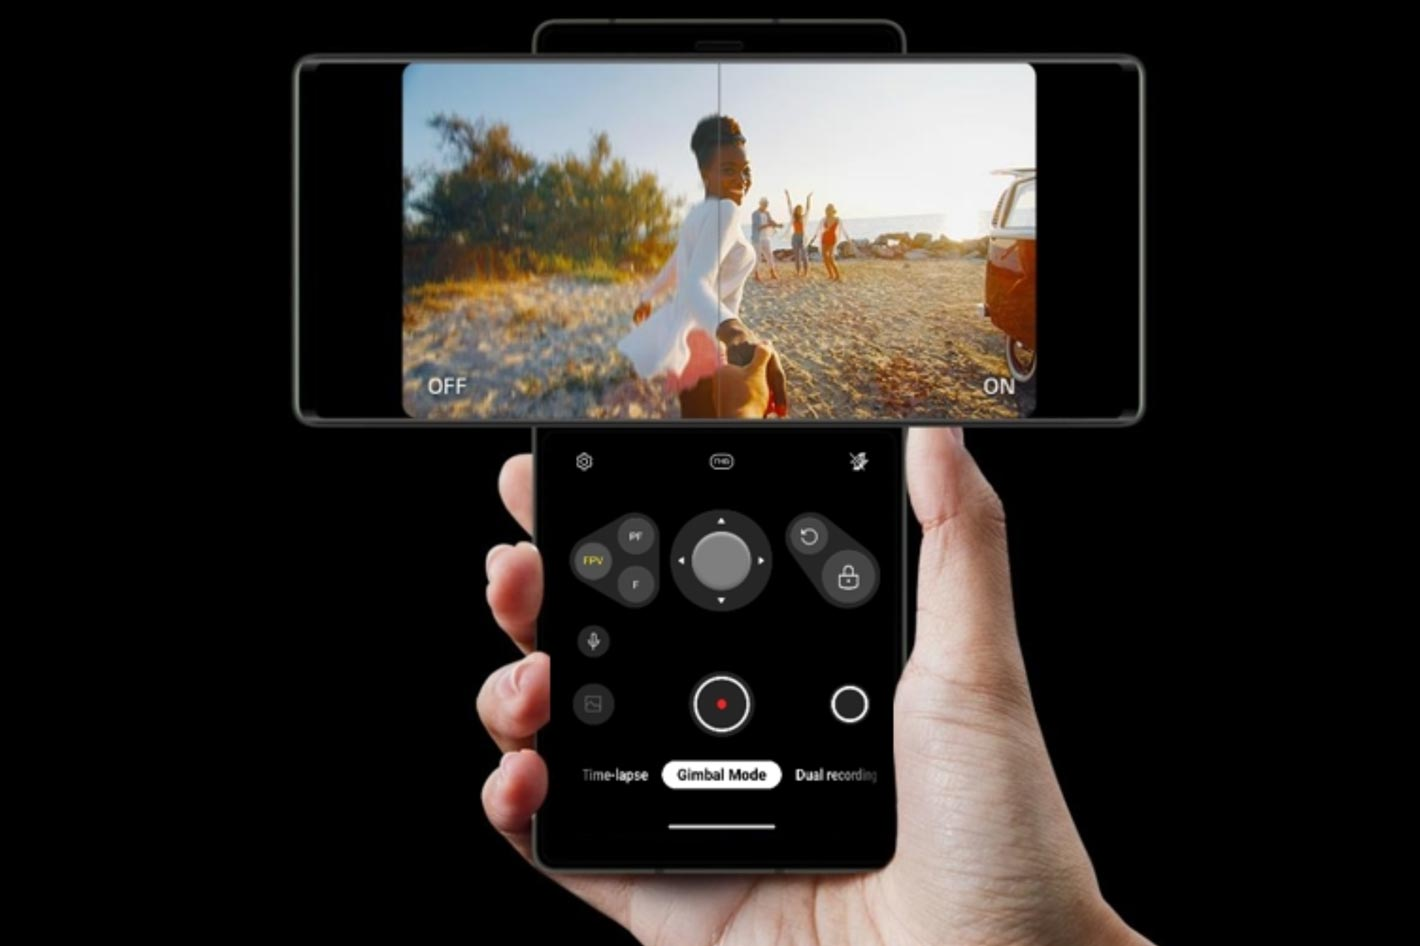 LG WING: an innovative smartphone for filmmakers